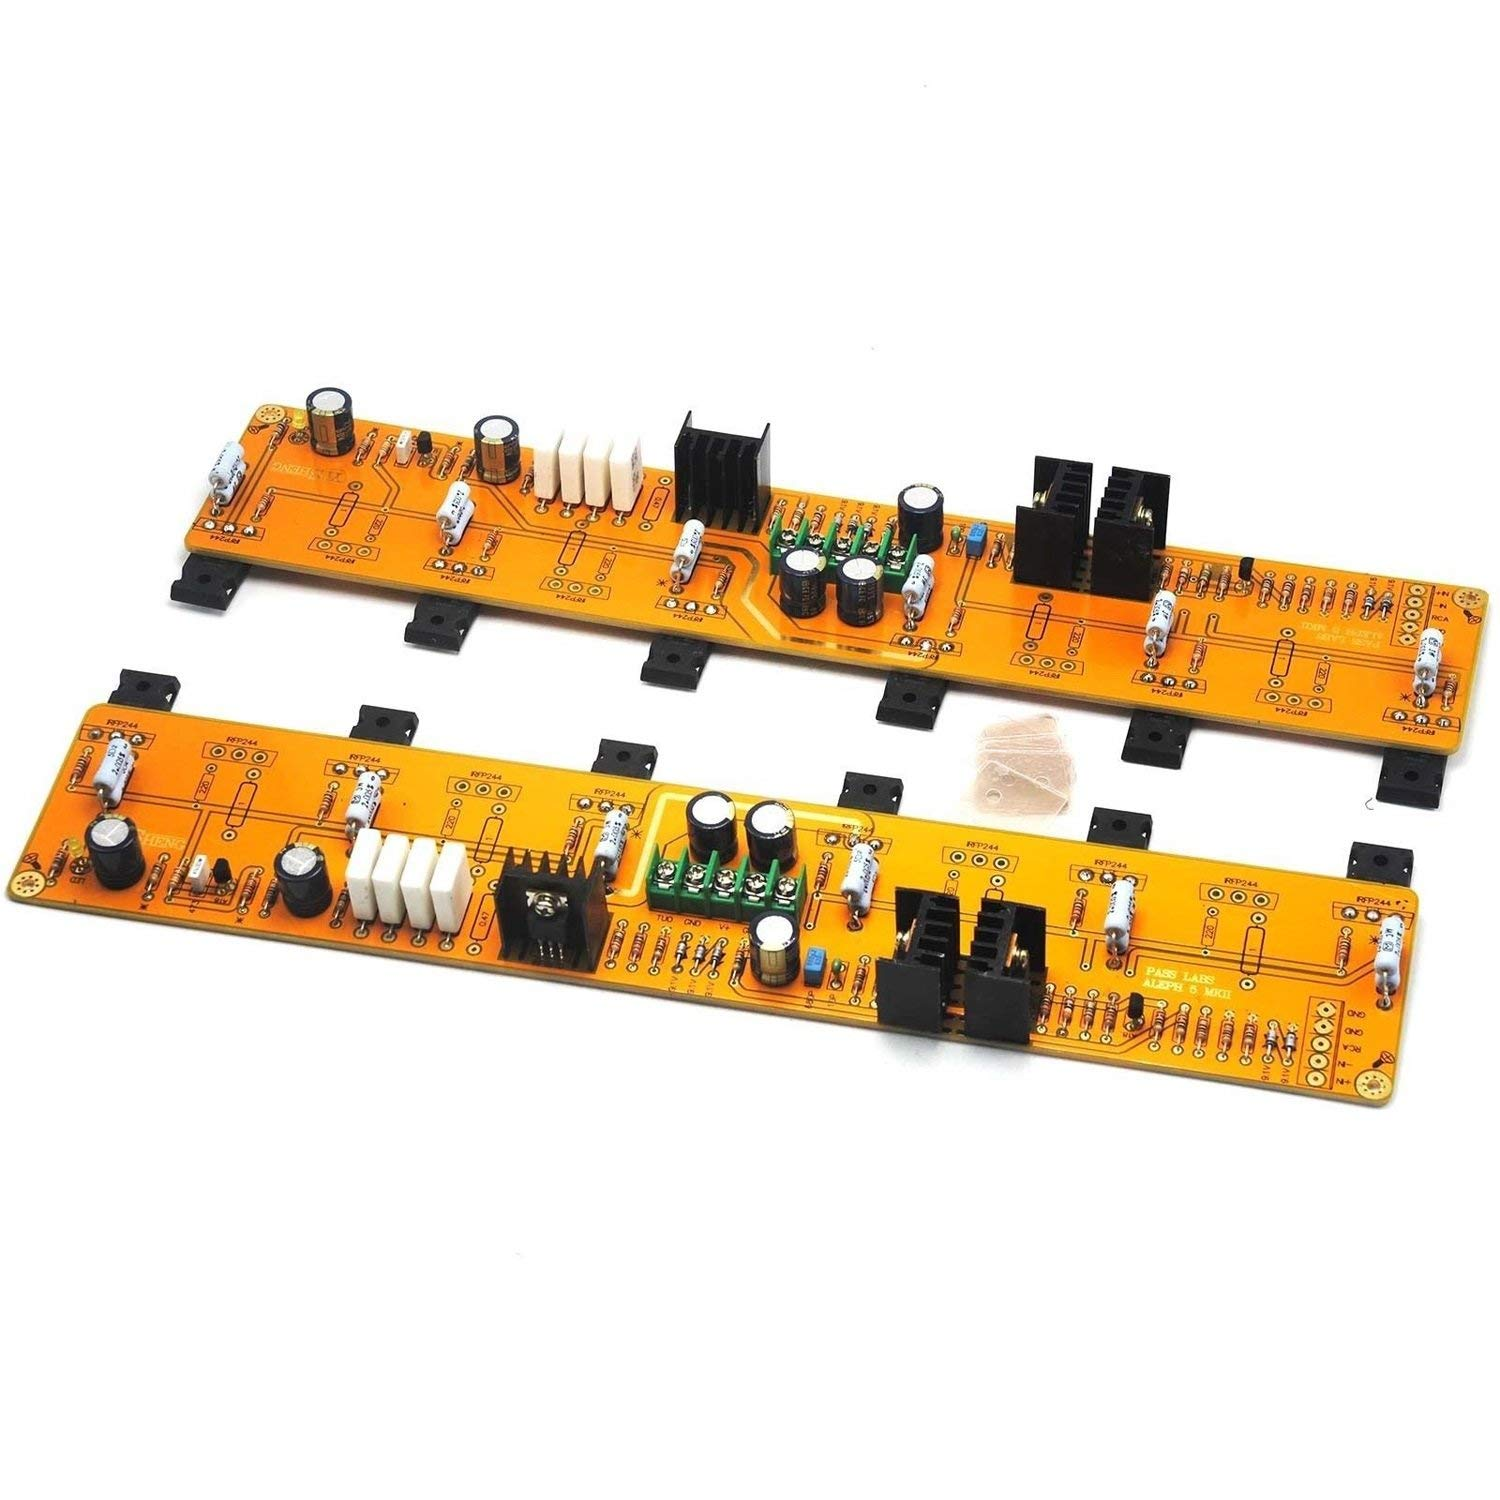 1 Pair (Two Channel) Pass A5 Single-Ended Class A HiFi 60W+60W Amplifier Board IRF244 IRF9610